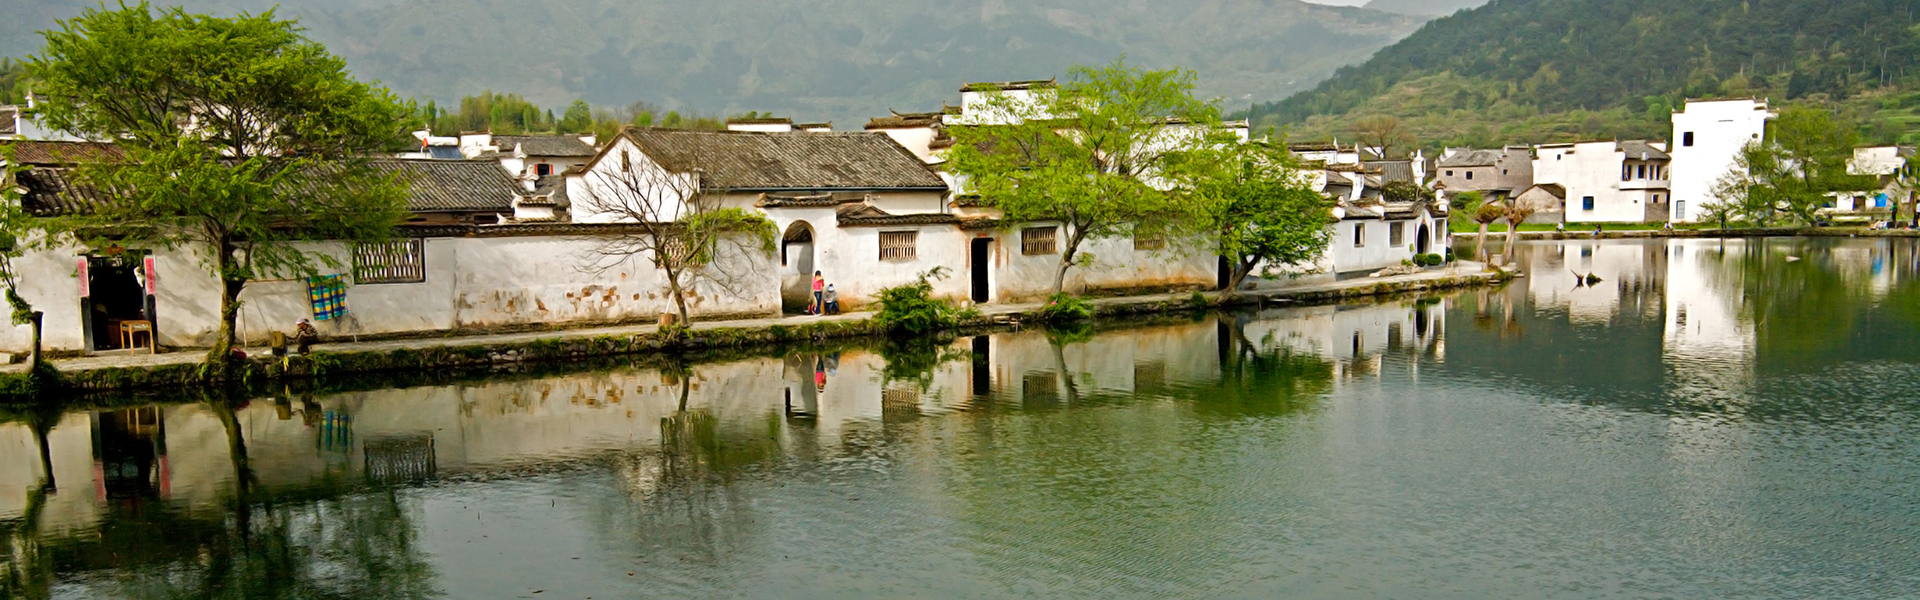 Beautiful and well-preserved villages & towns in splendid China